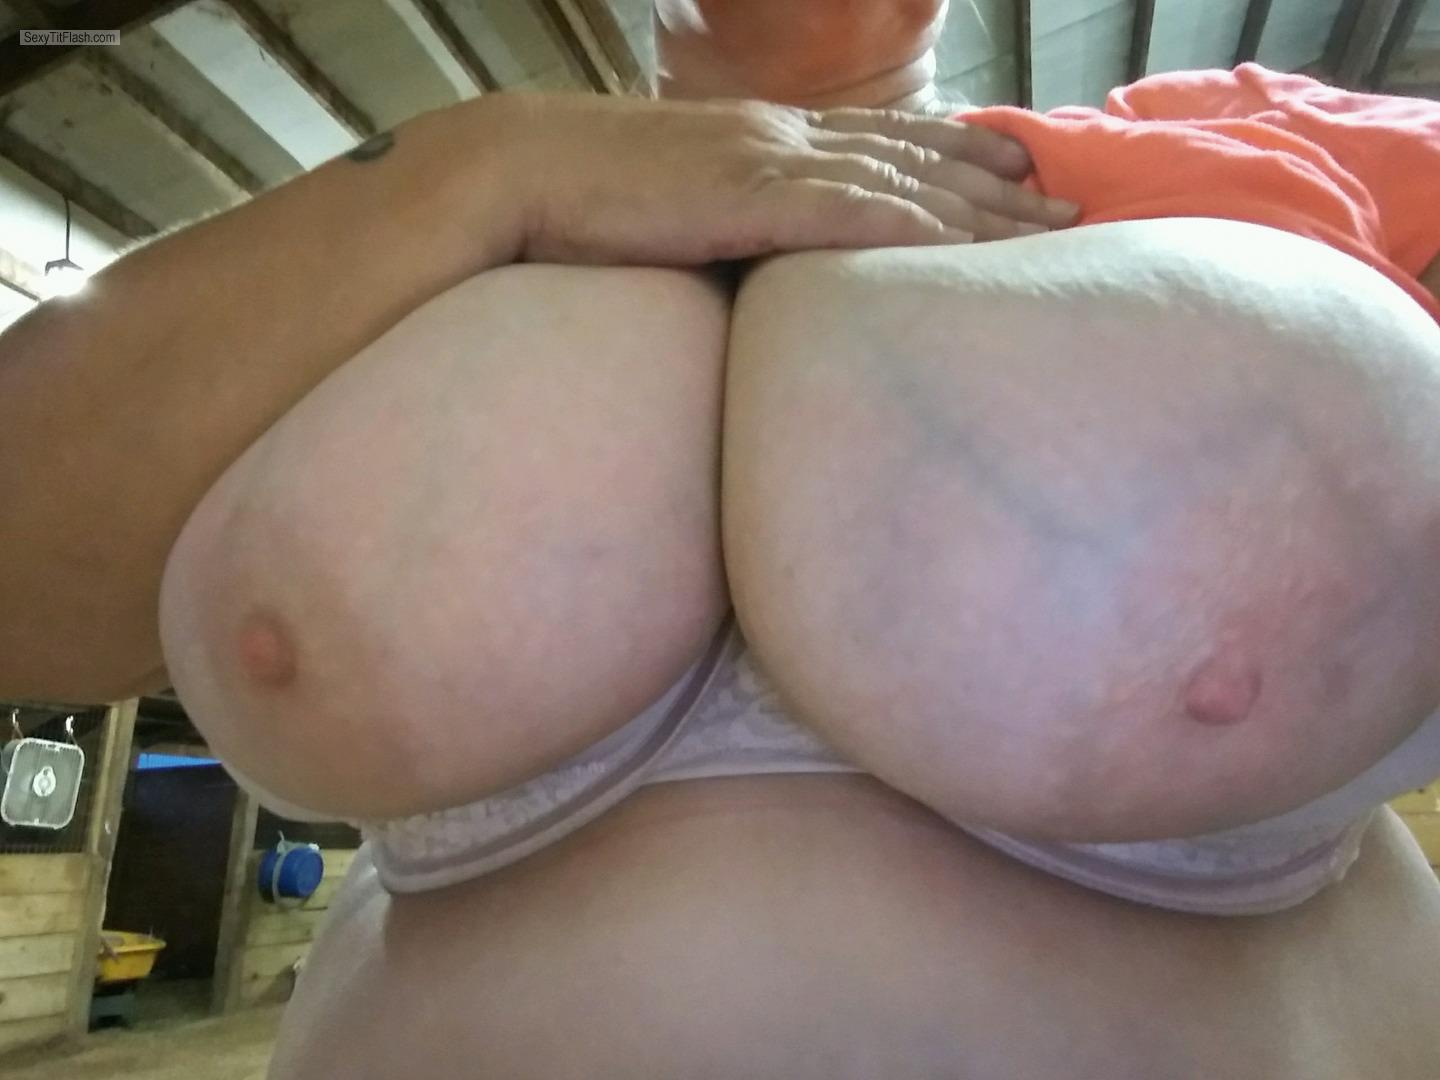 Tit Flash: Ex-Wife's Extremely Big Tits - NipLip from United States